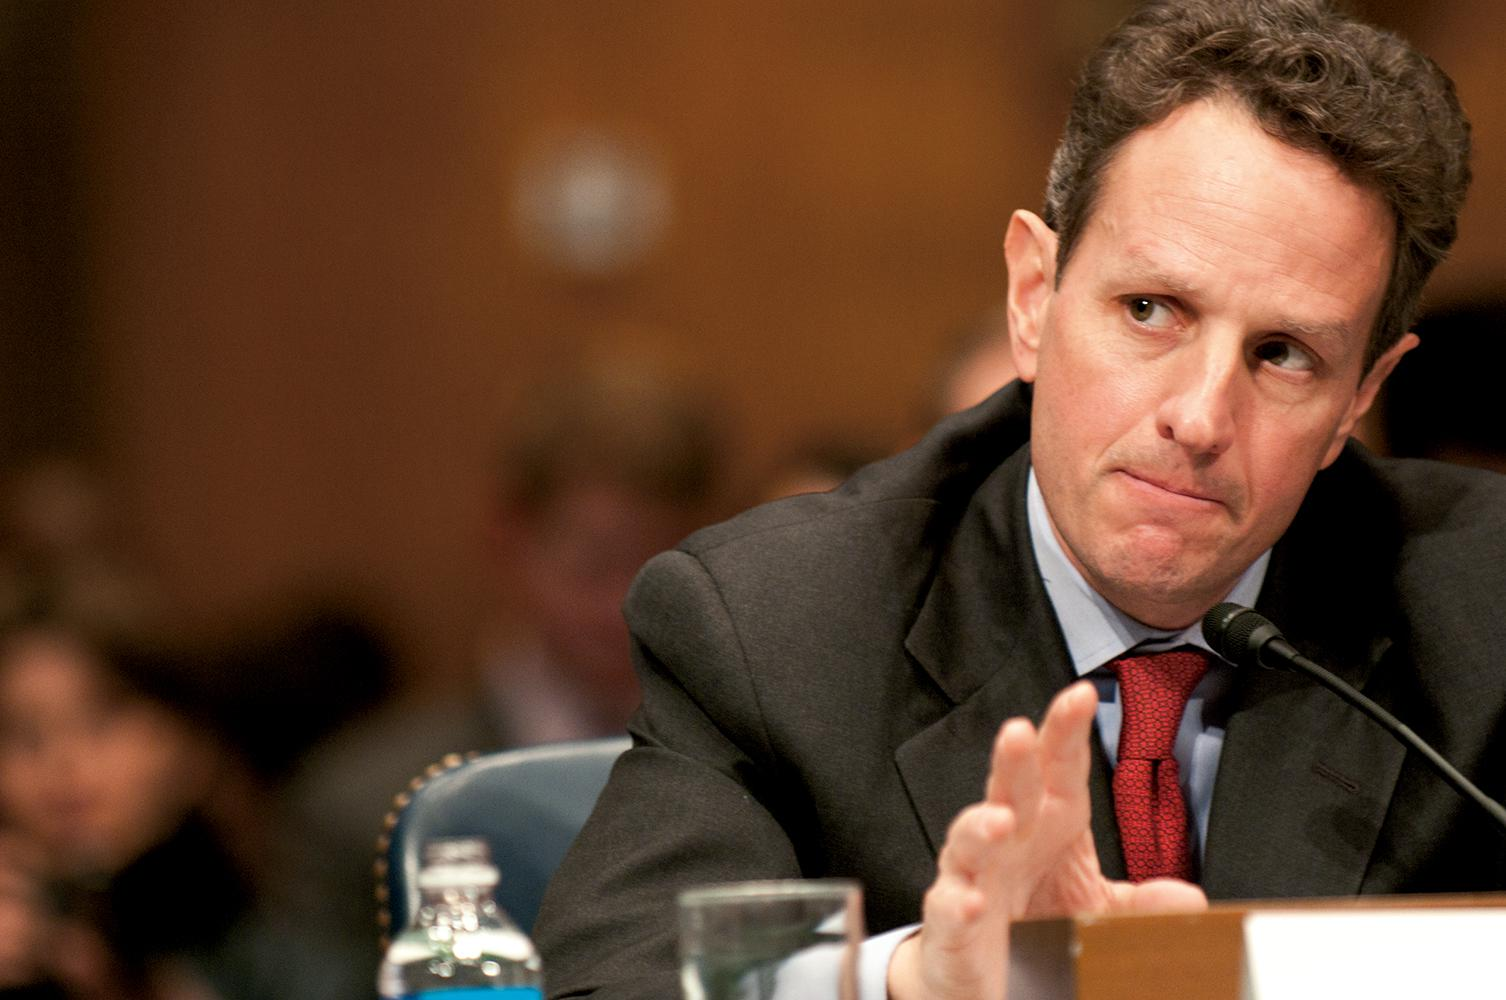 Geithner Book: When Obama Blew a Dog Whistle and a Budget Deal